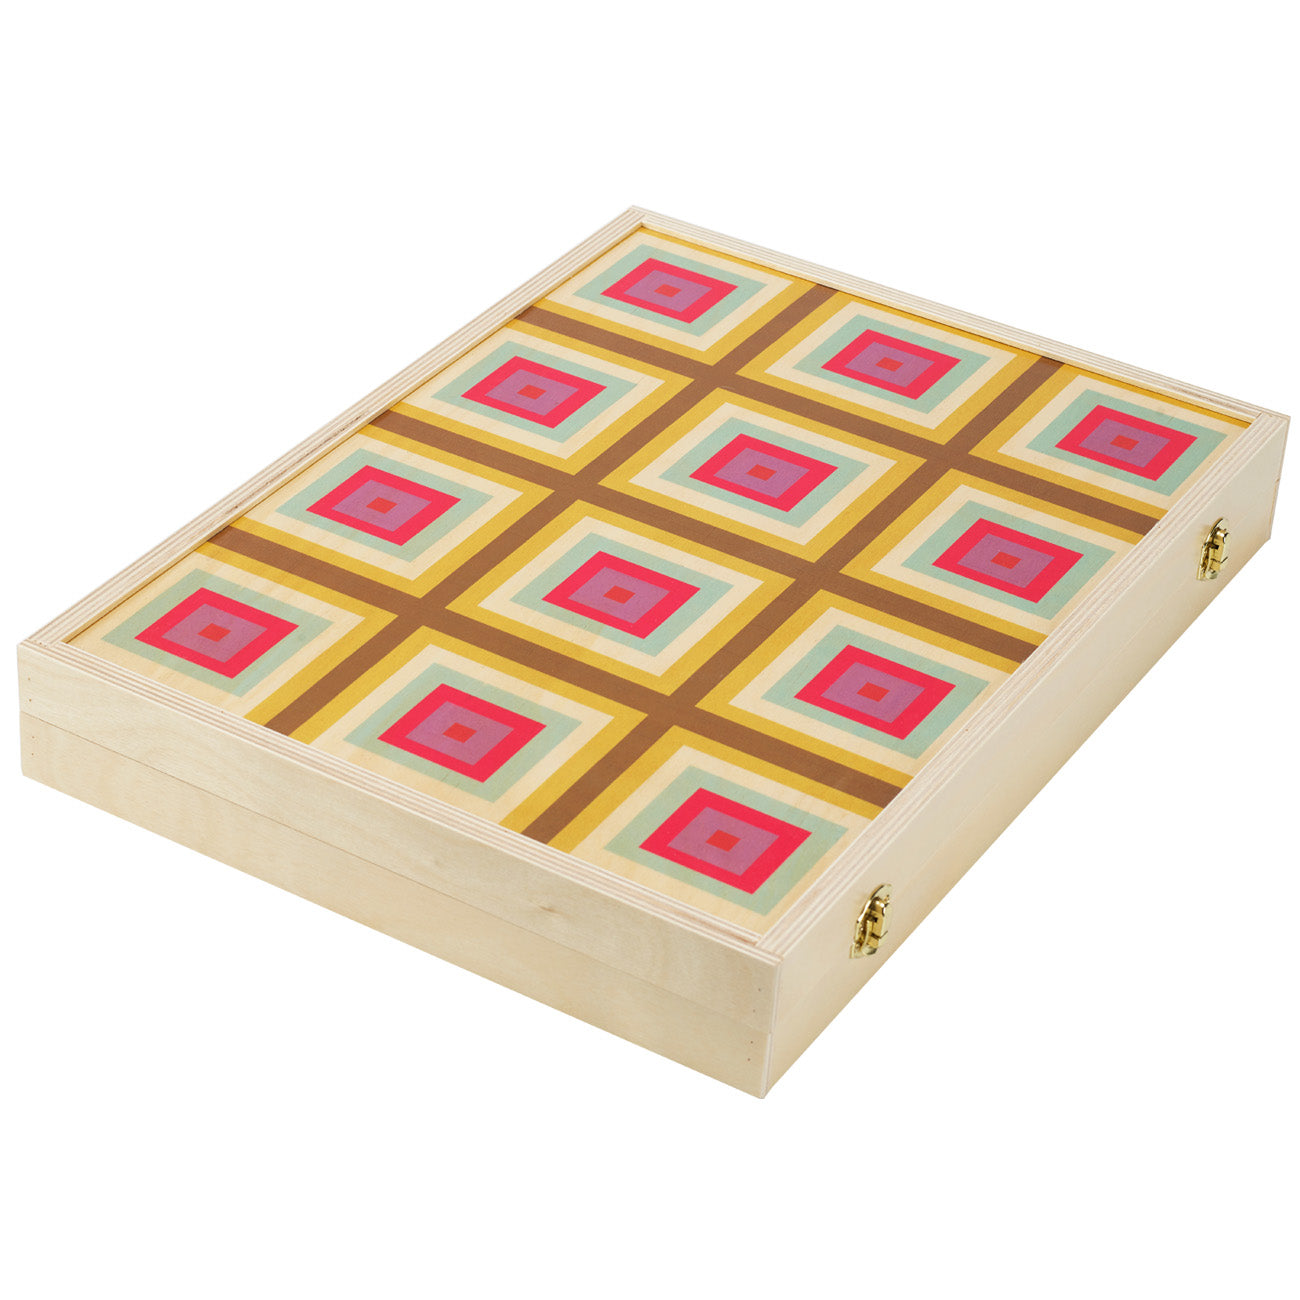 squaresville yellow tabletop backgammon